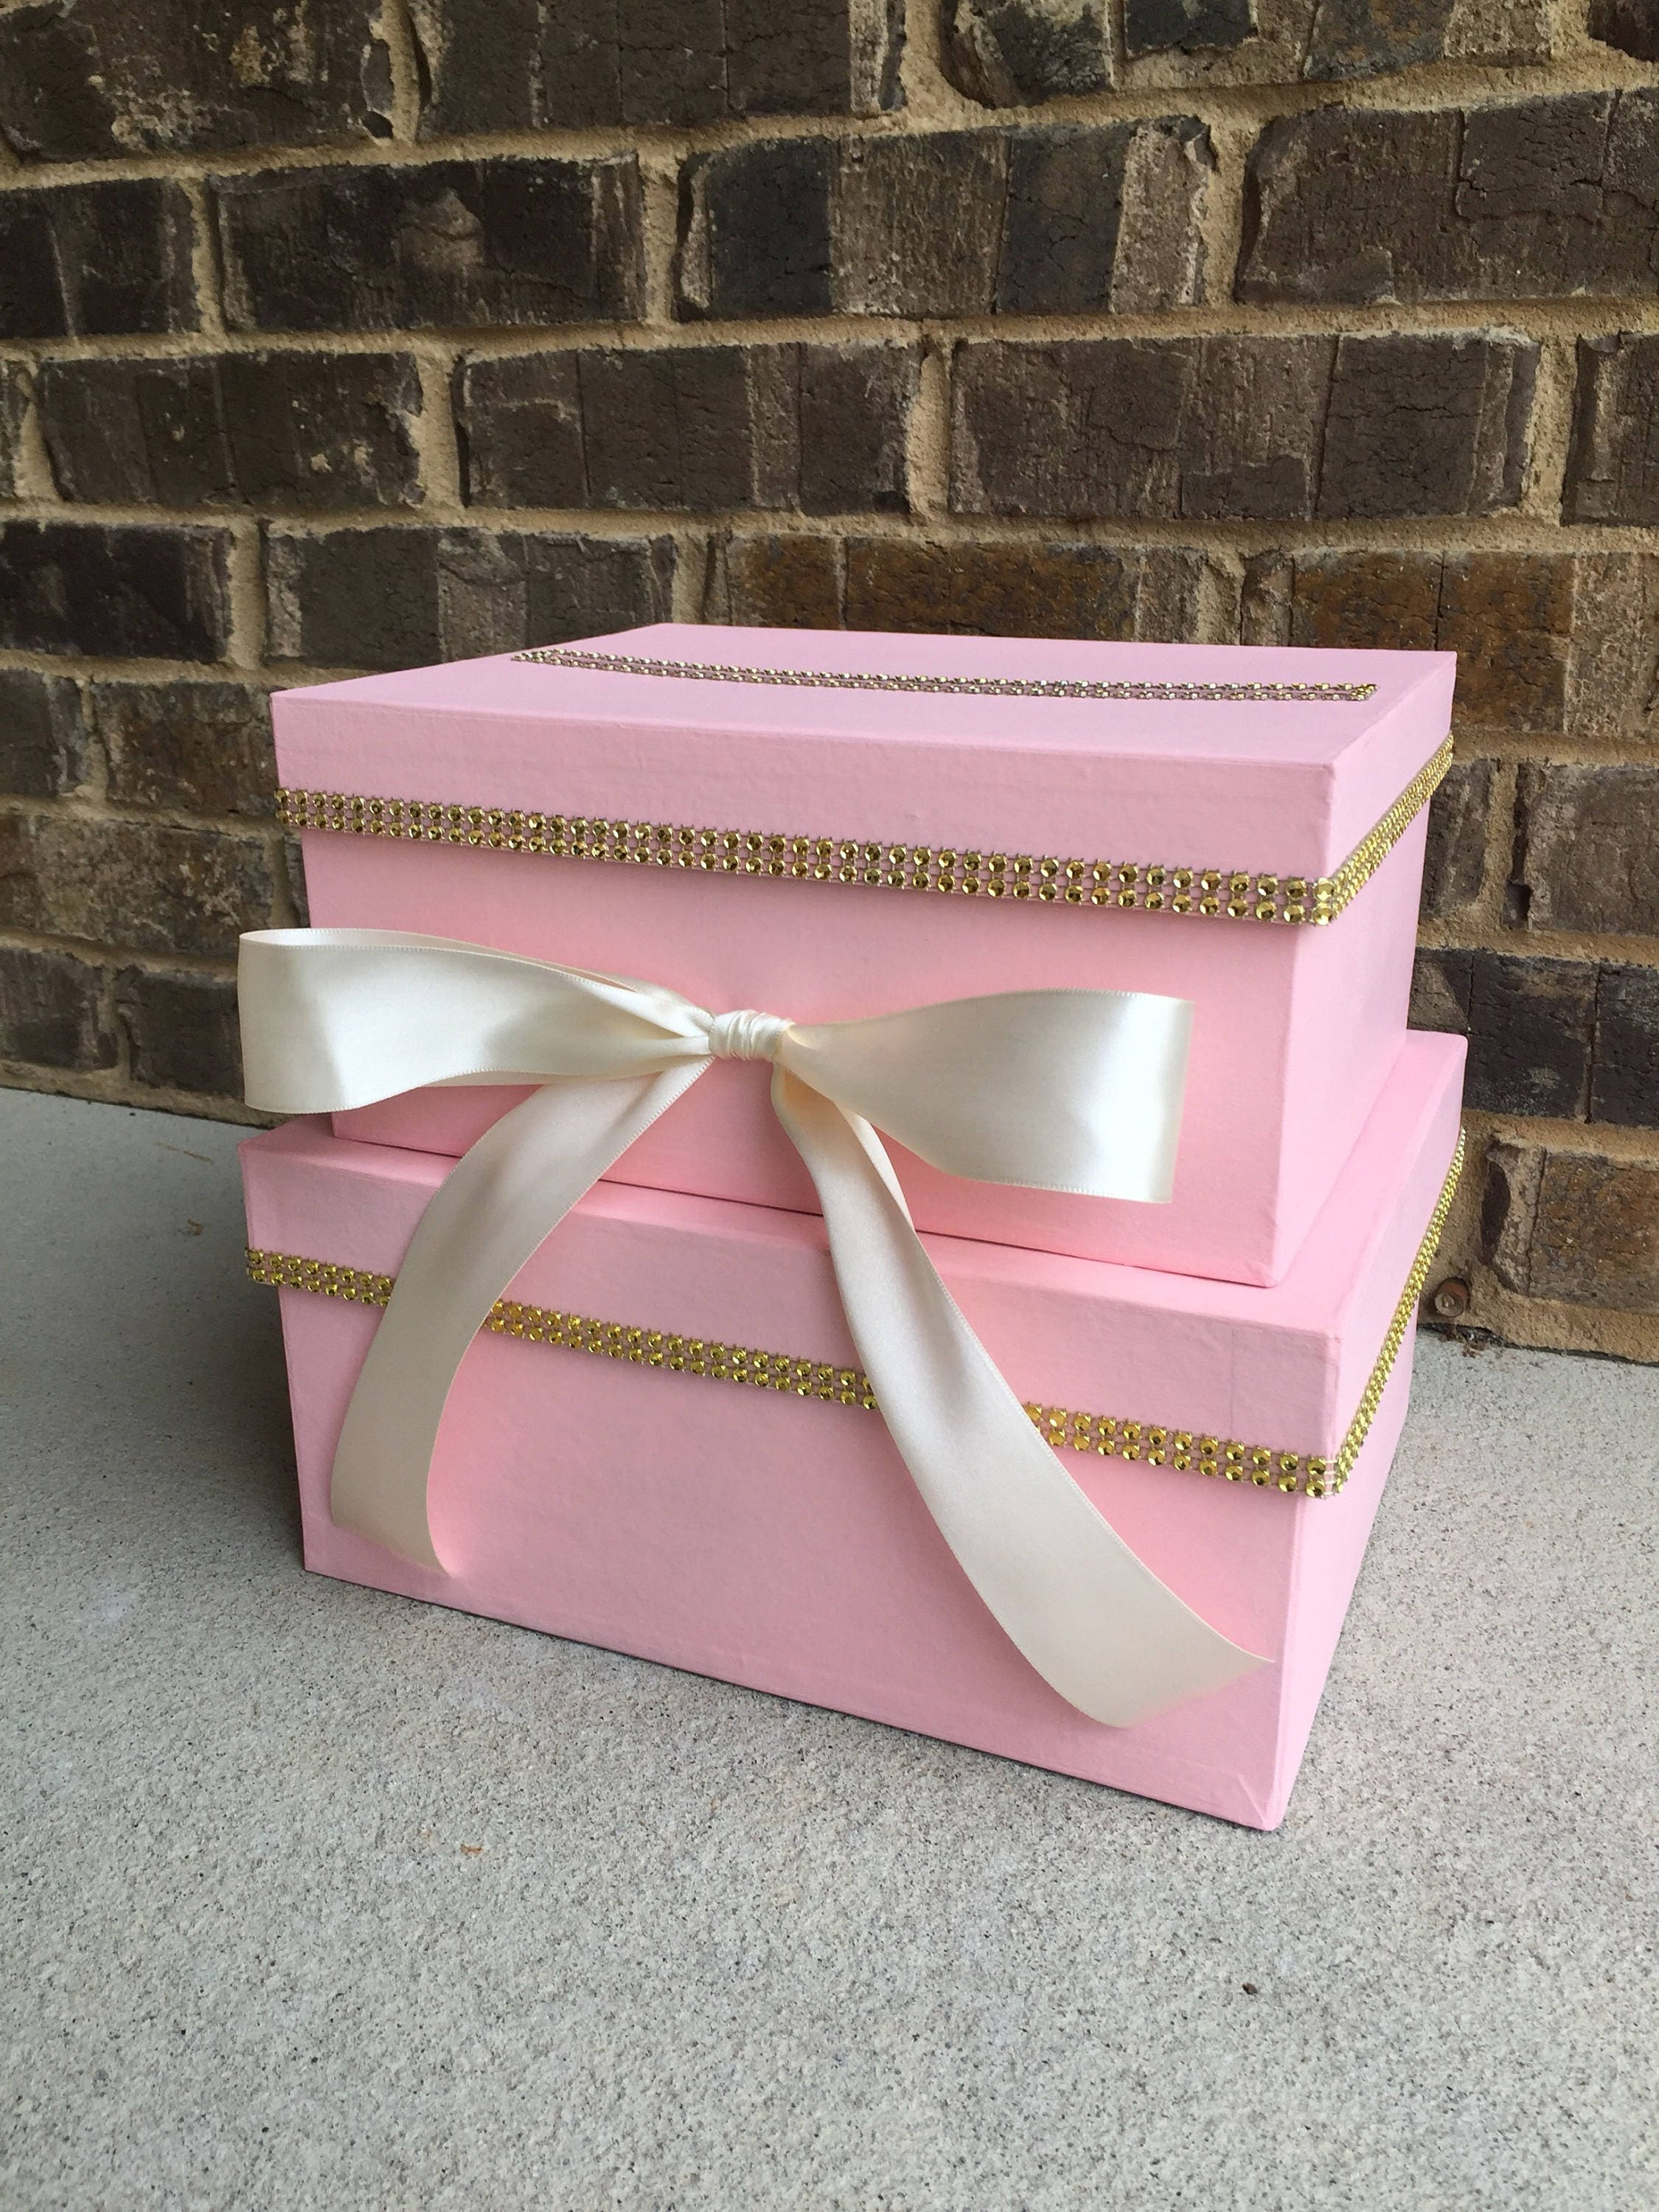 Blush Pink and Gold Card Box Centerpiece Mid-Size 2 Tier